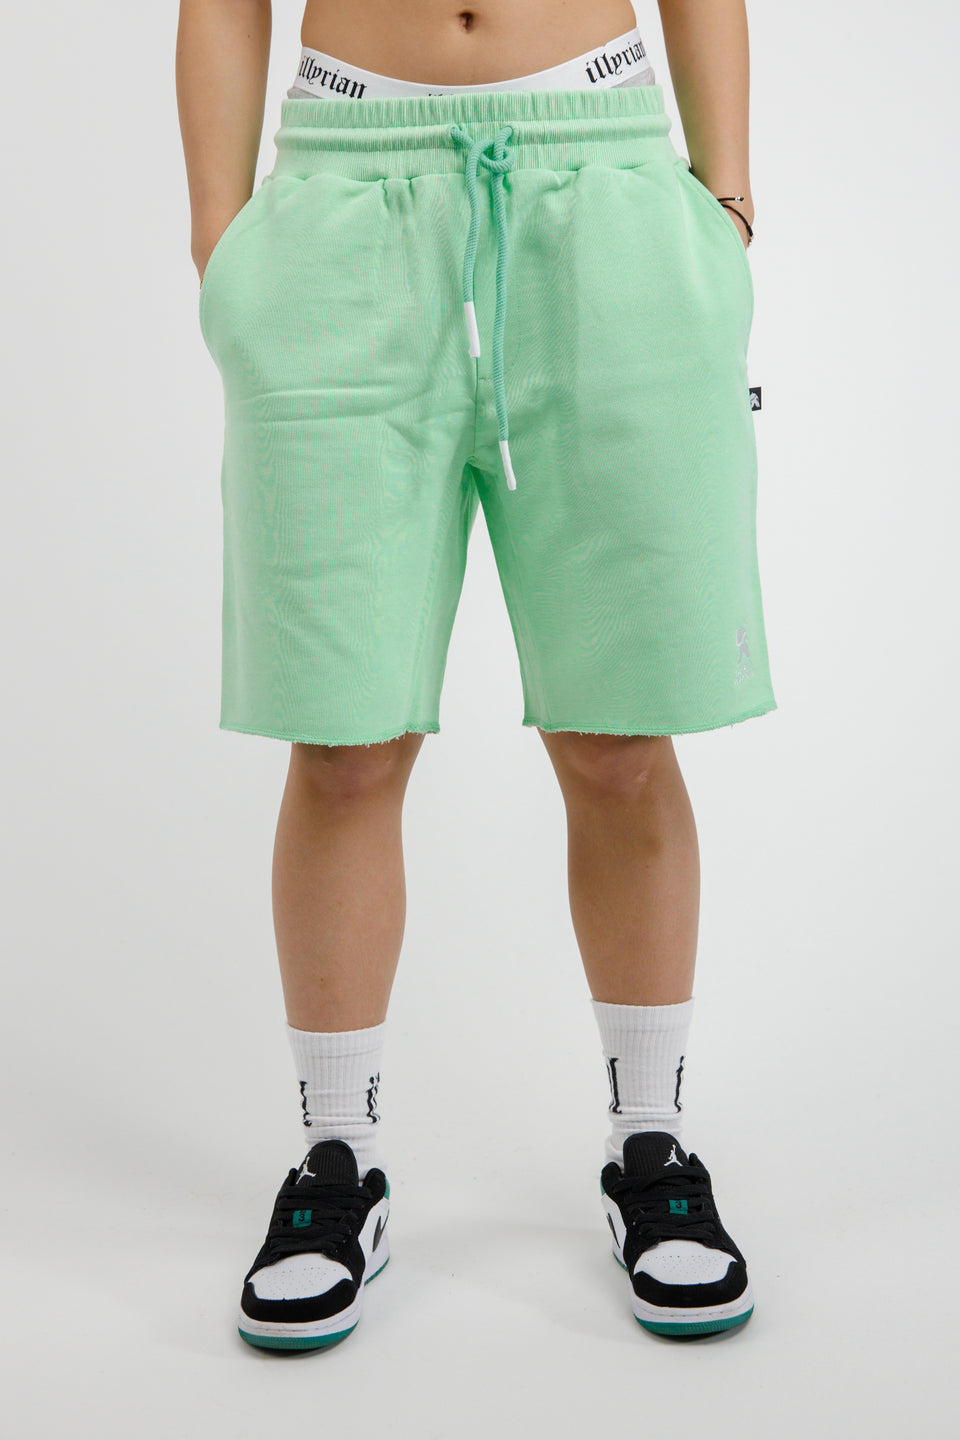 Illyrian Shorts – Pastel Green